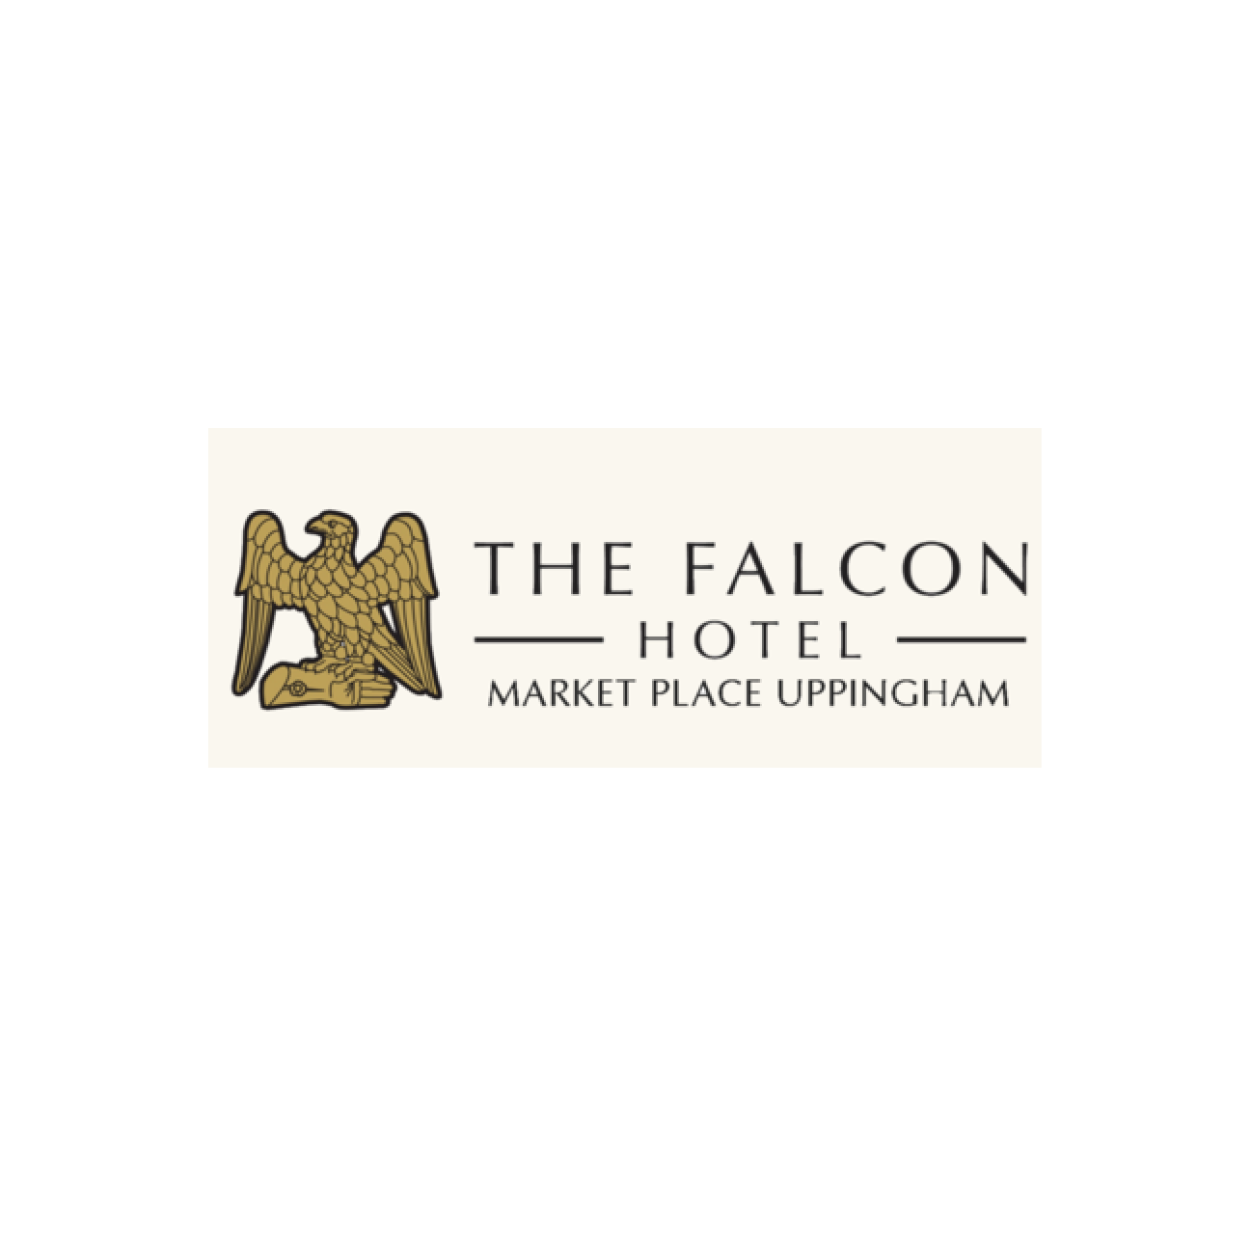 The Falcon Hotel Uppingham